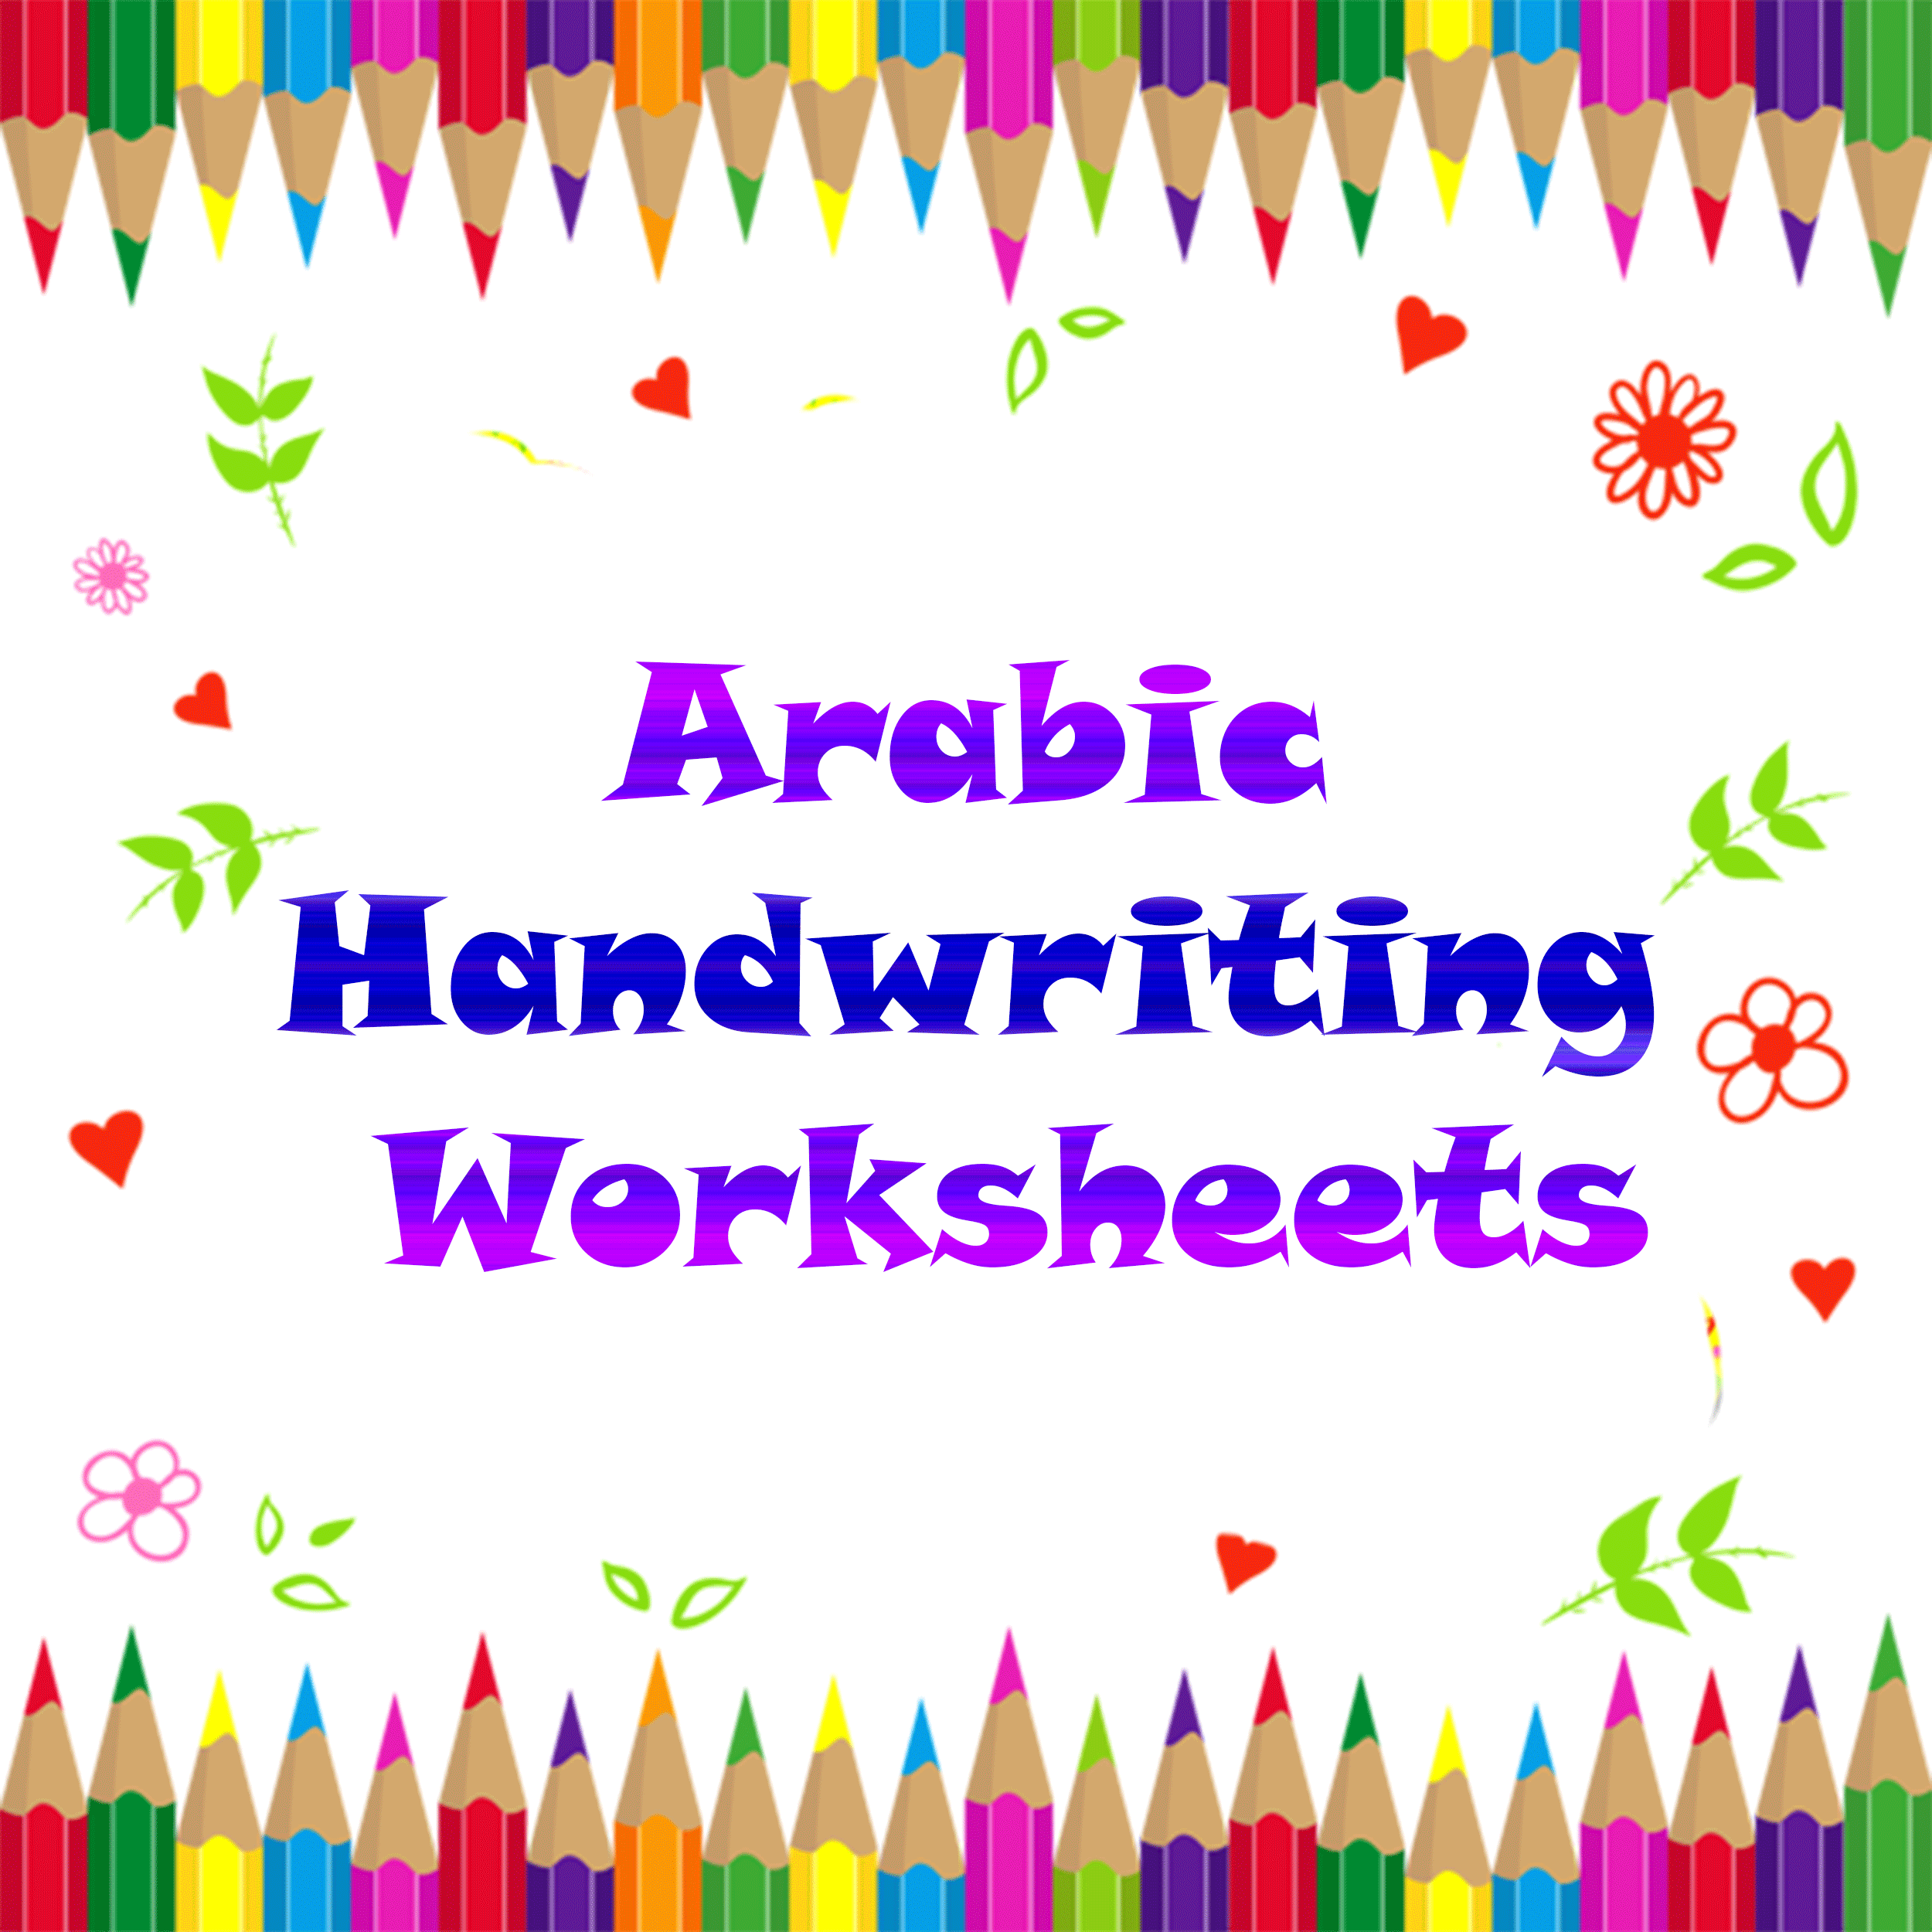 Arabic Handwriting Worksheets Download The Ebook S